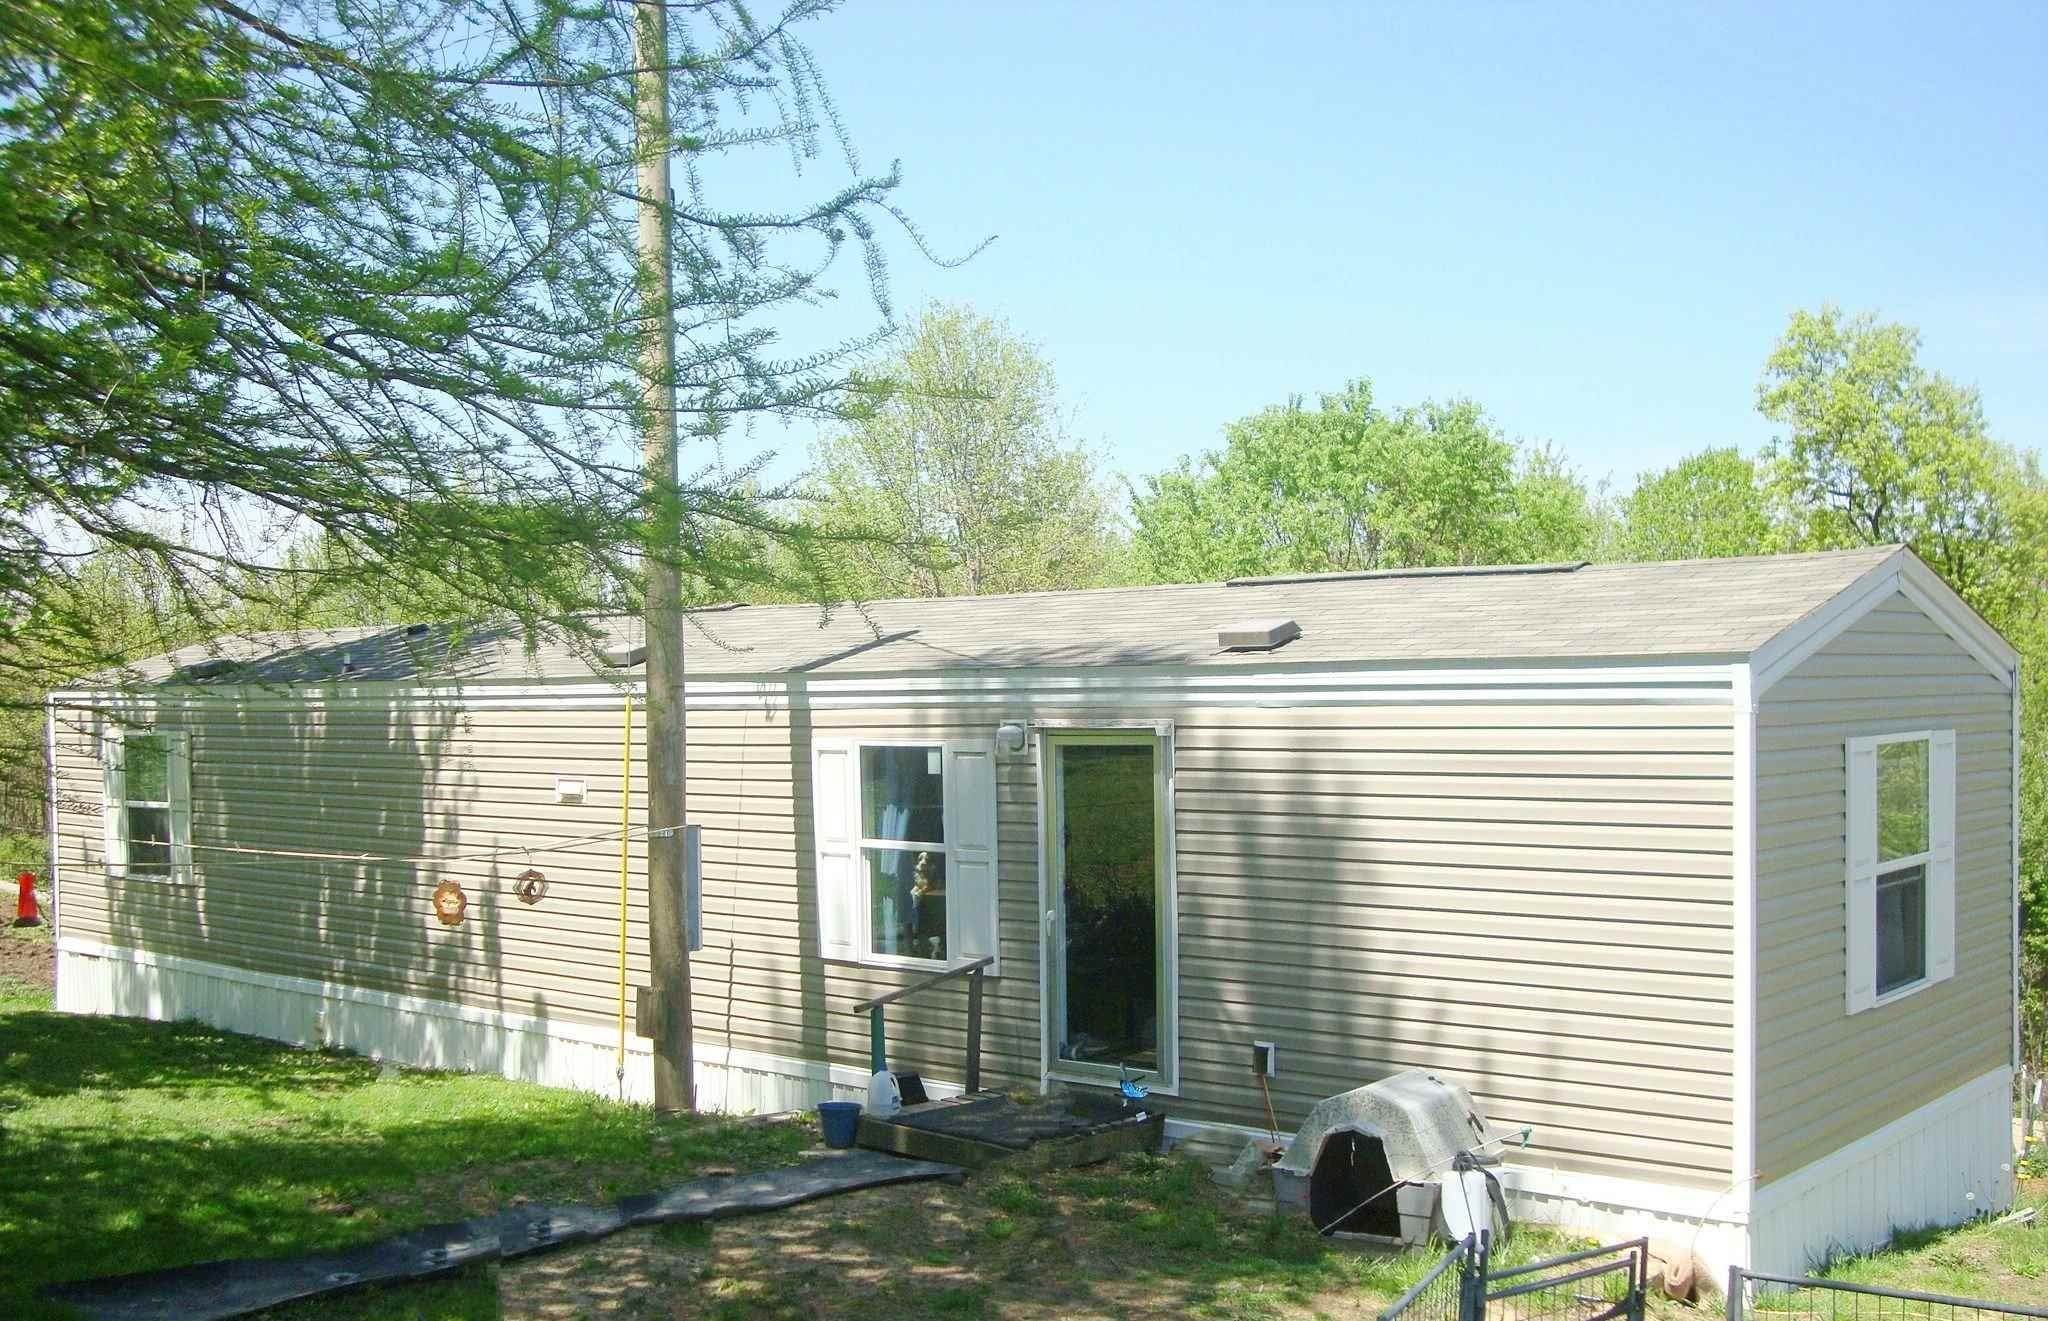 Manufactured Home for Sale at 2901 Rutherford Road Loogootee, Indiana 47553 United States